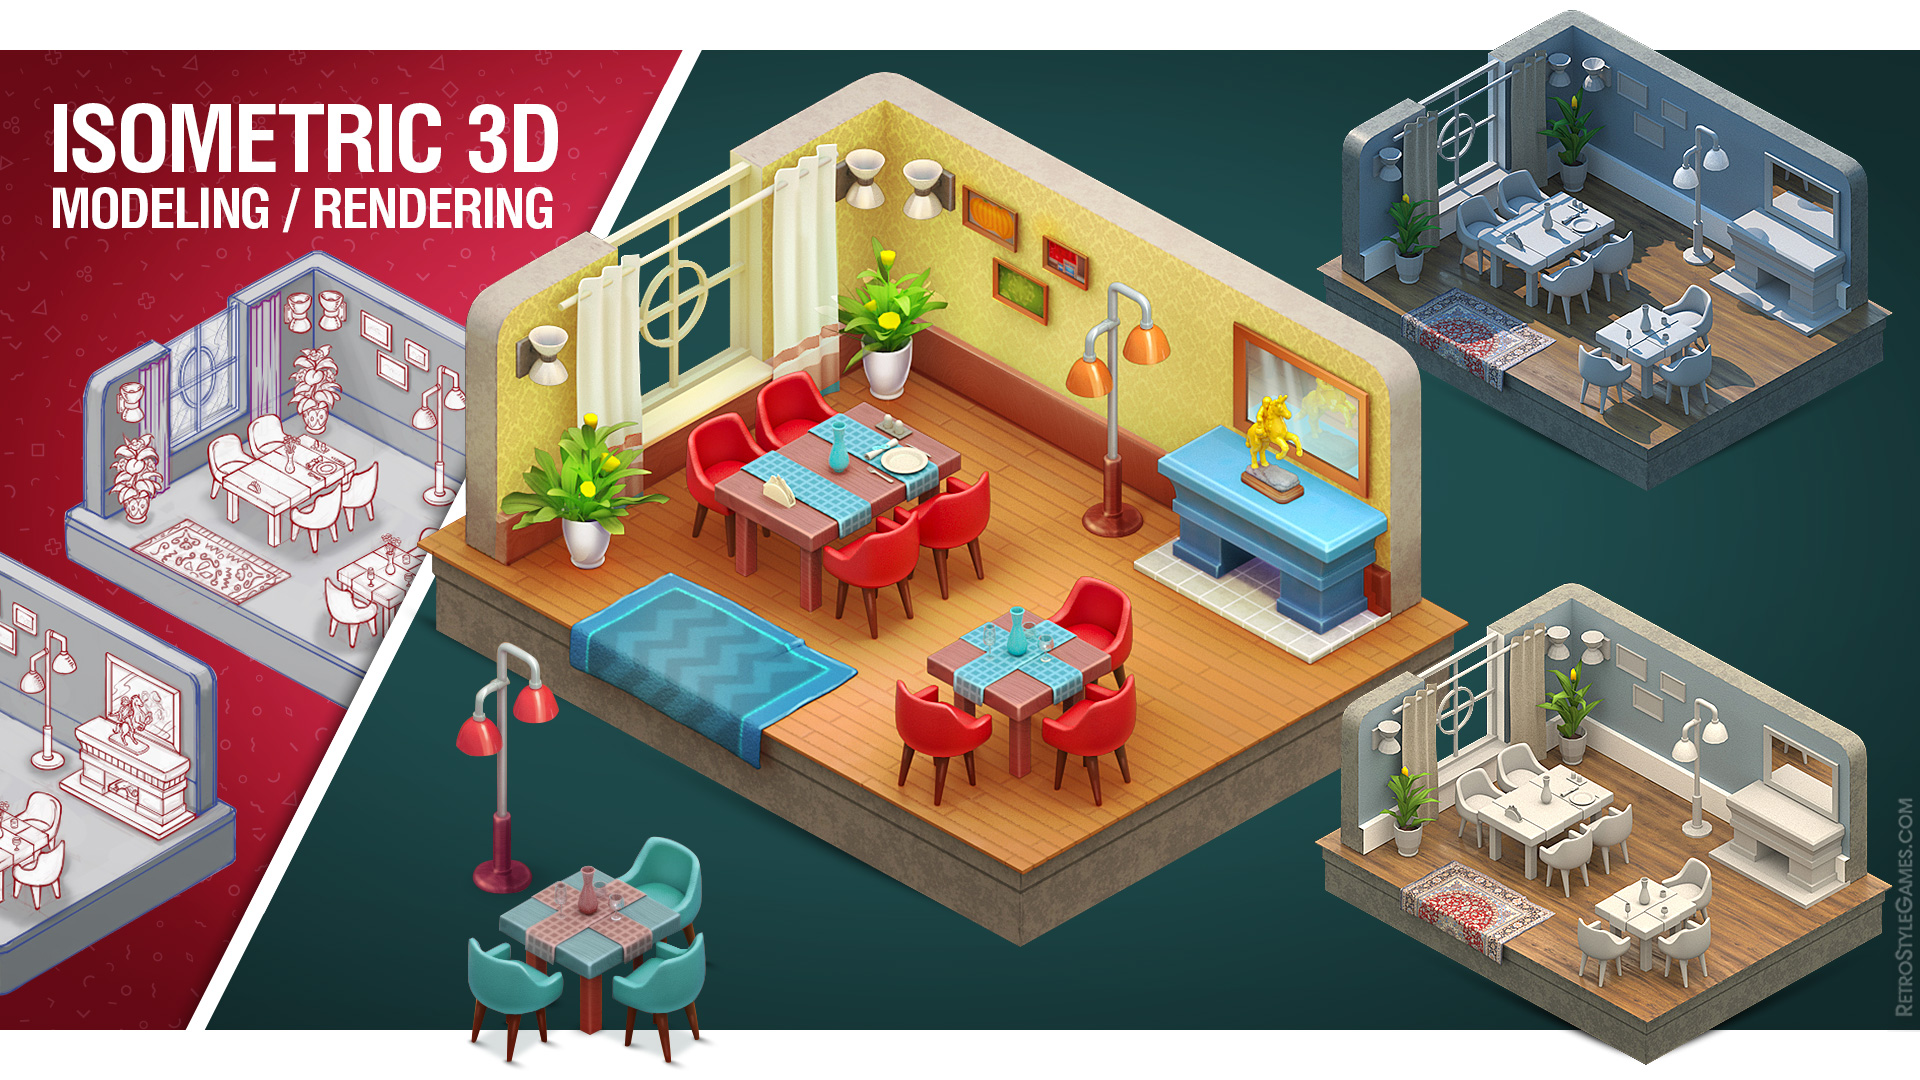 Isometric Room 3D Modeling Rendering How to Make